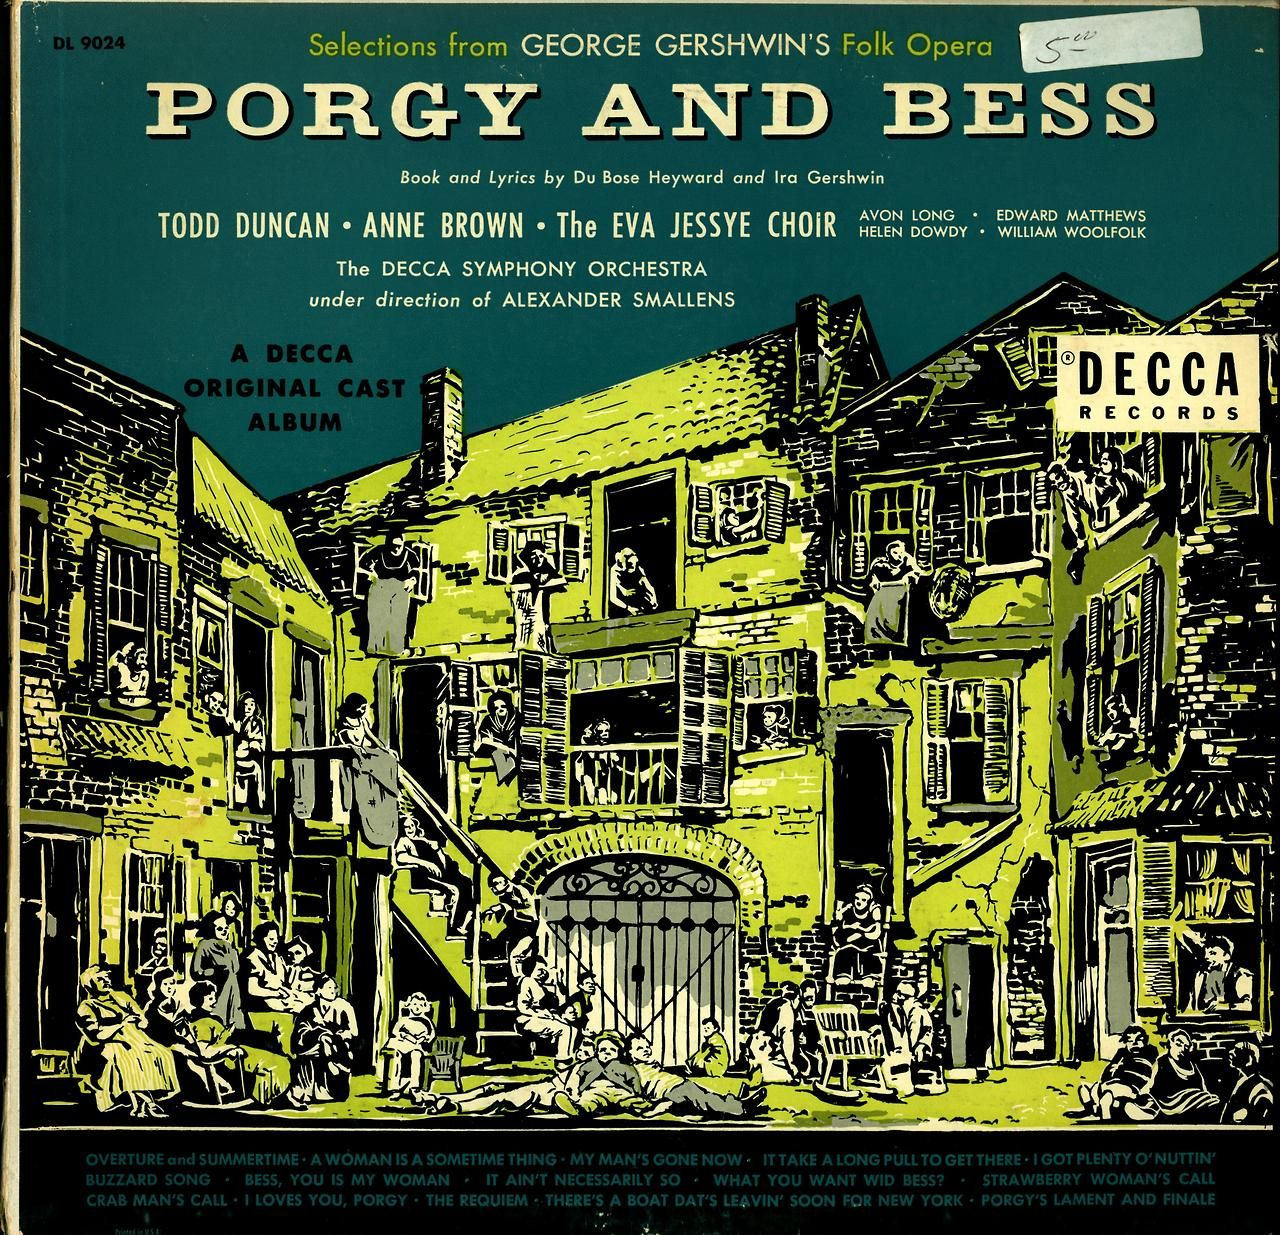 Gershwin- Selections from Porgy and Bess Decca Symphony Orchestra, Alexander Smallens, cond.  Decca DL 9024 (1955)